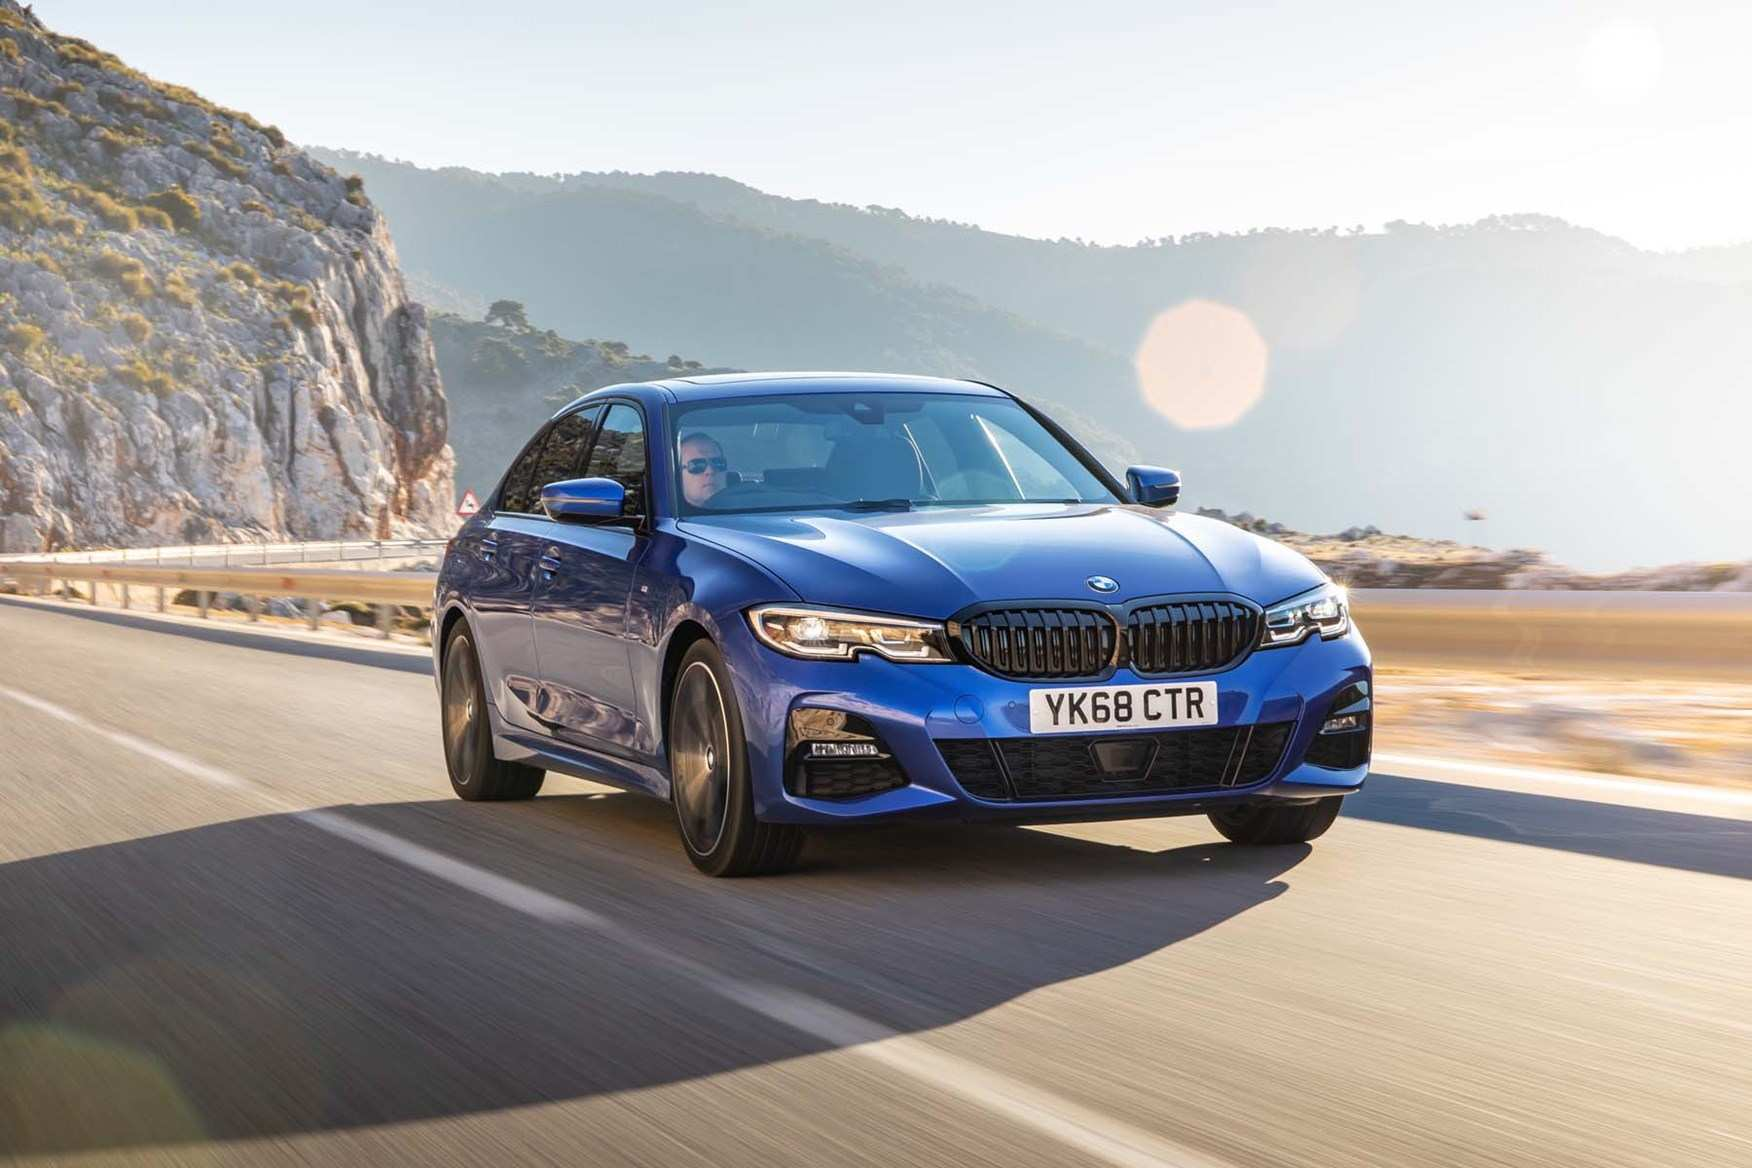 24 Gallery of 2019 Bmw 3 Series Electric Spy Shoot Exterior and Interior for 2019 Bmw 3 Series Electric Spy Shoot